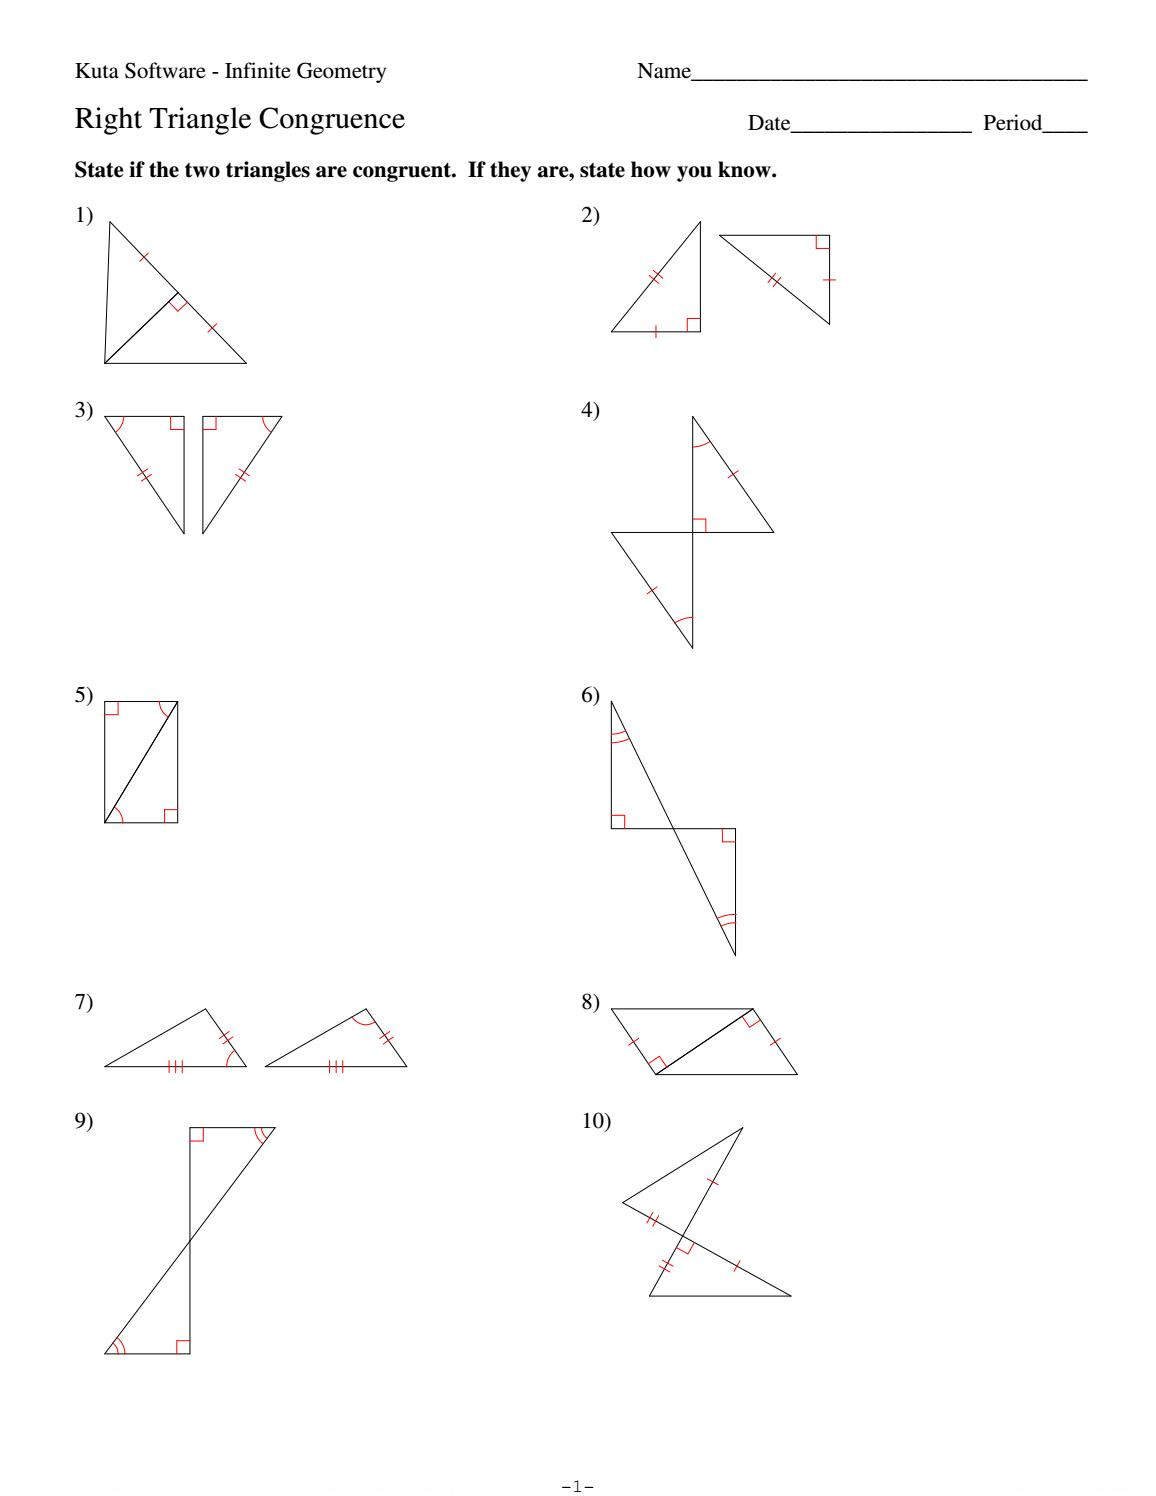 4 right triangle congruence